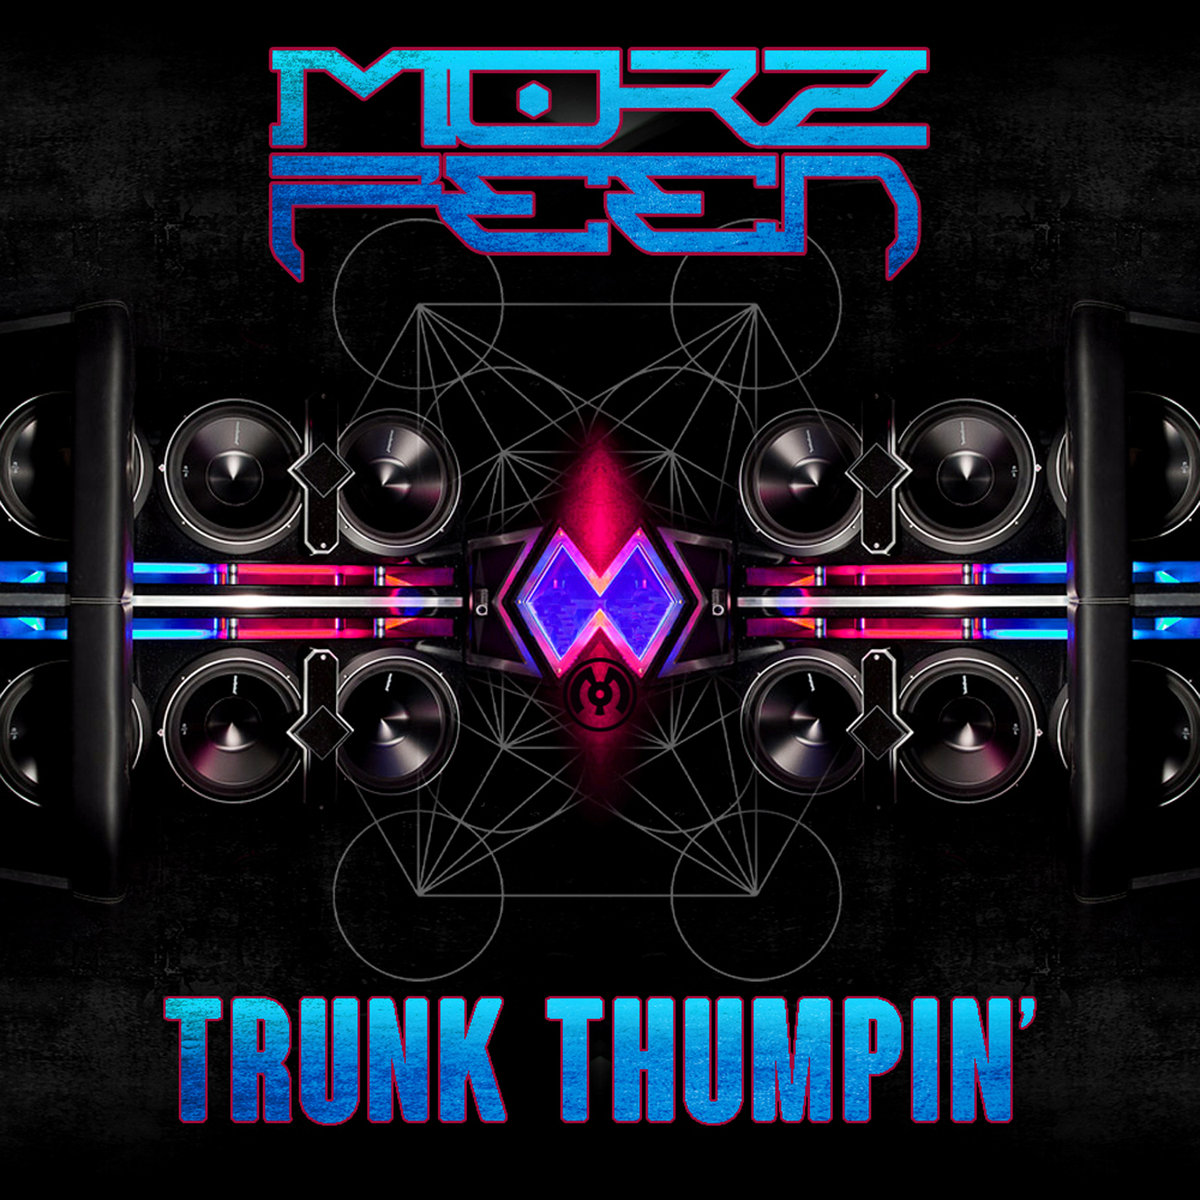 MorzFeen - Trunk Thumpin' @ 'Trunk Thumpin'' album (electronic, dubstep)